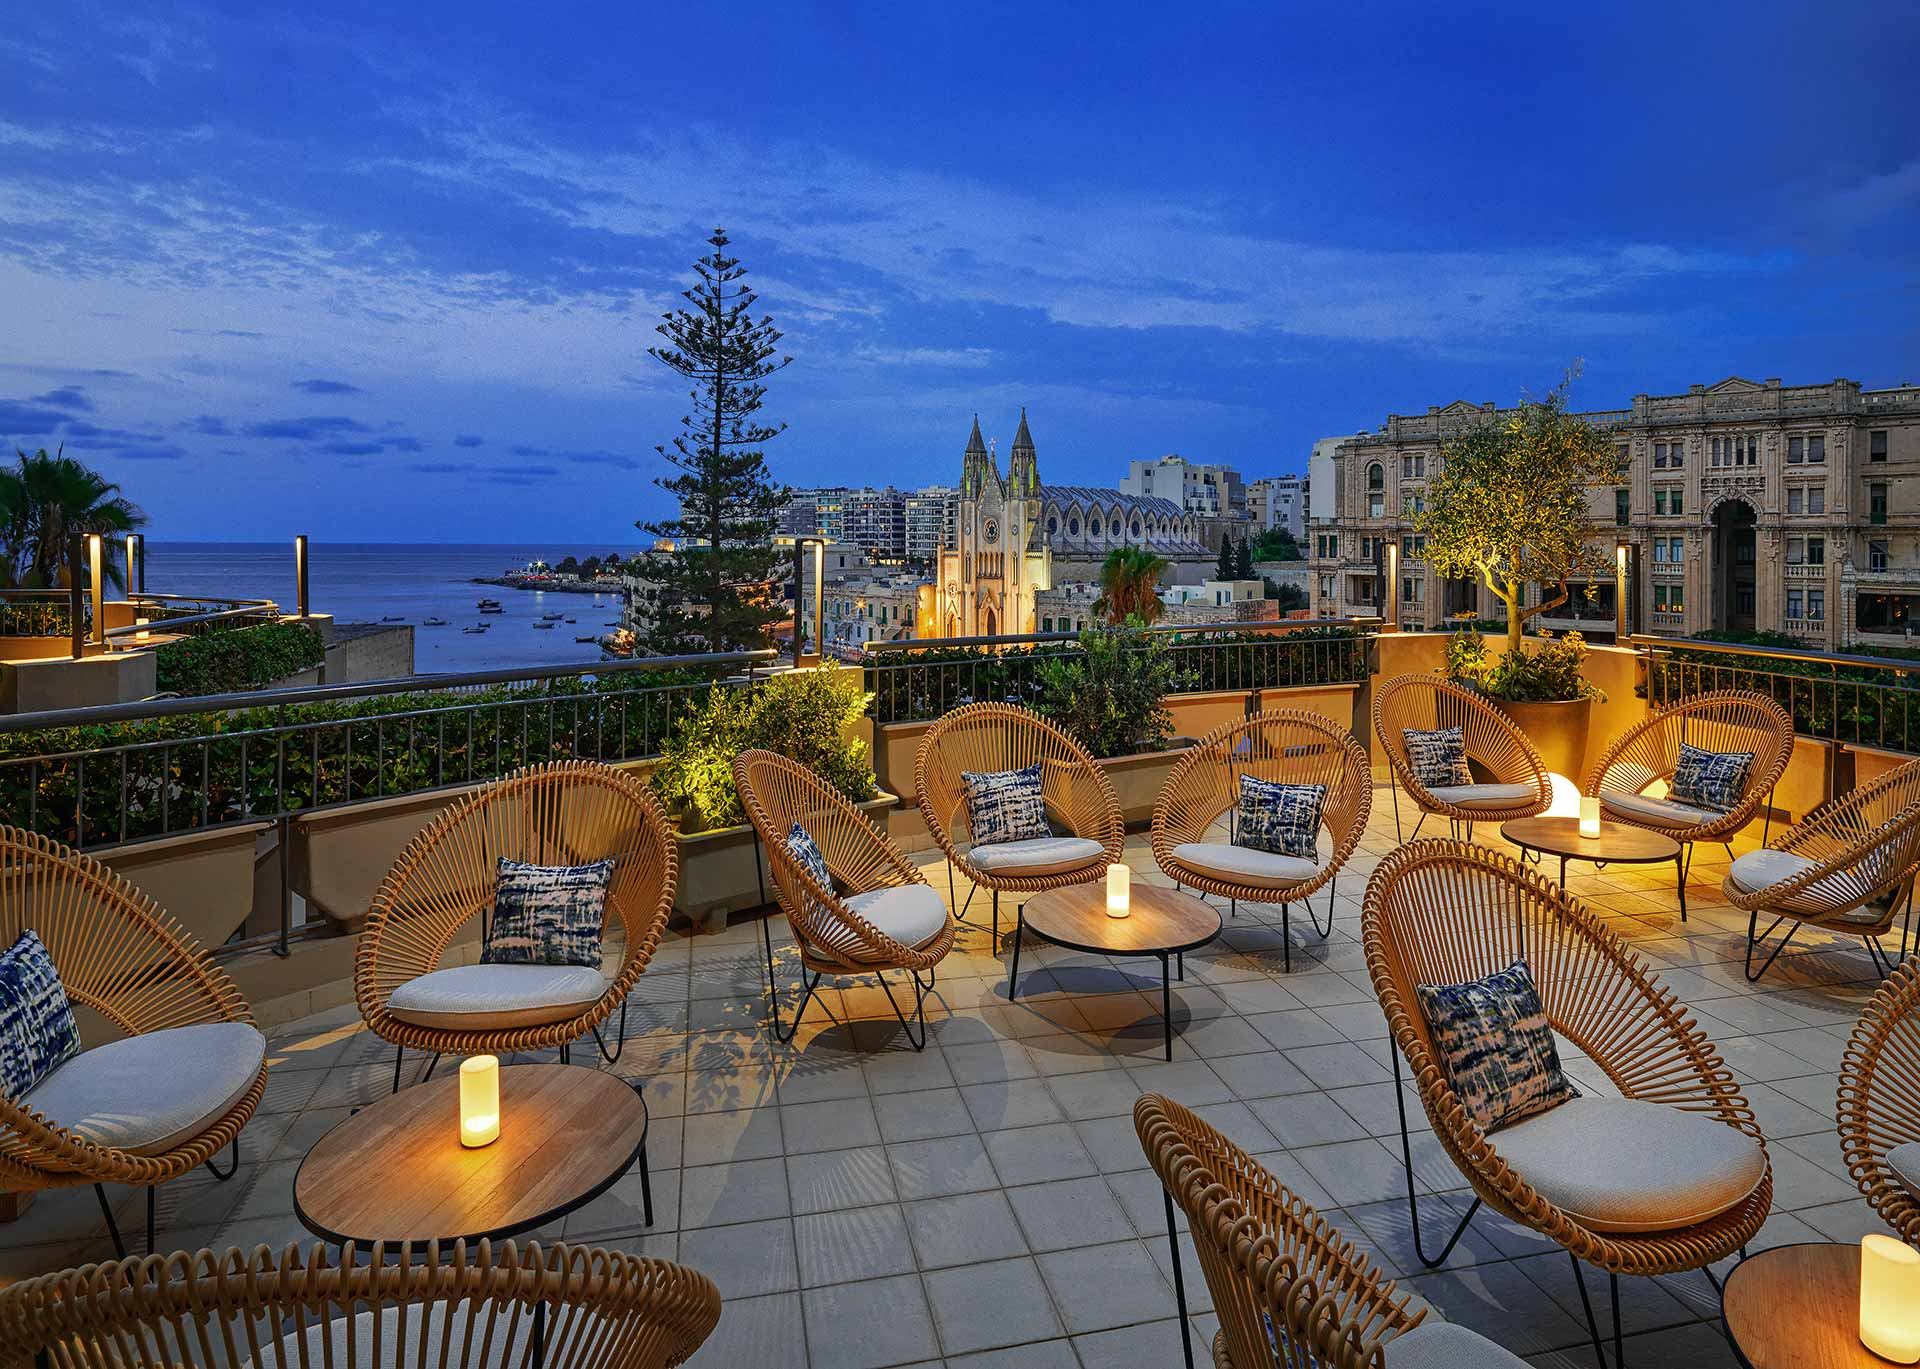 a luxury hotel restaurant terrace with candle-lit tables overlooking historic Malta and Mediterranean sea sea